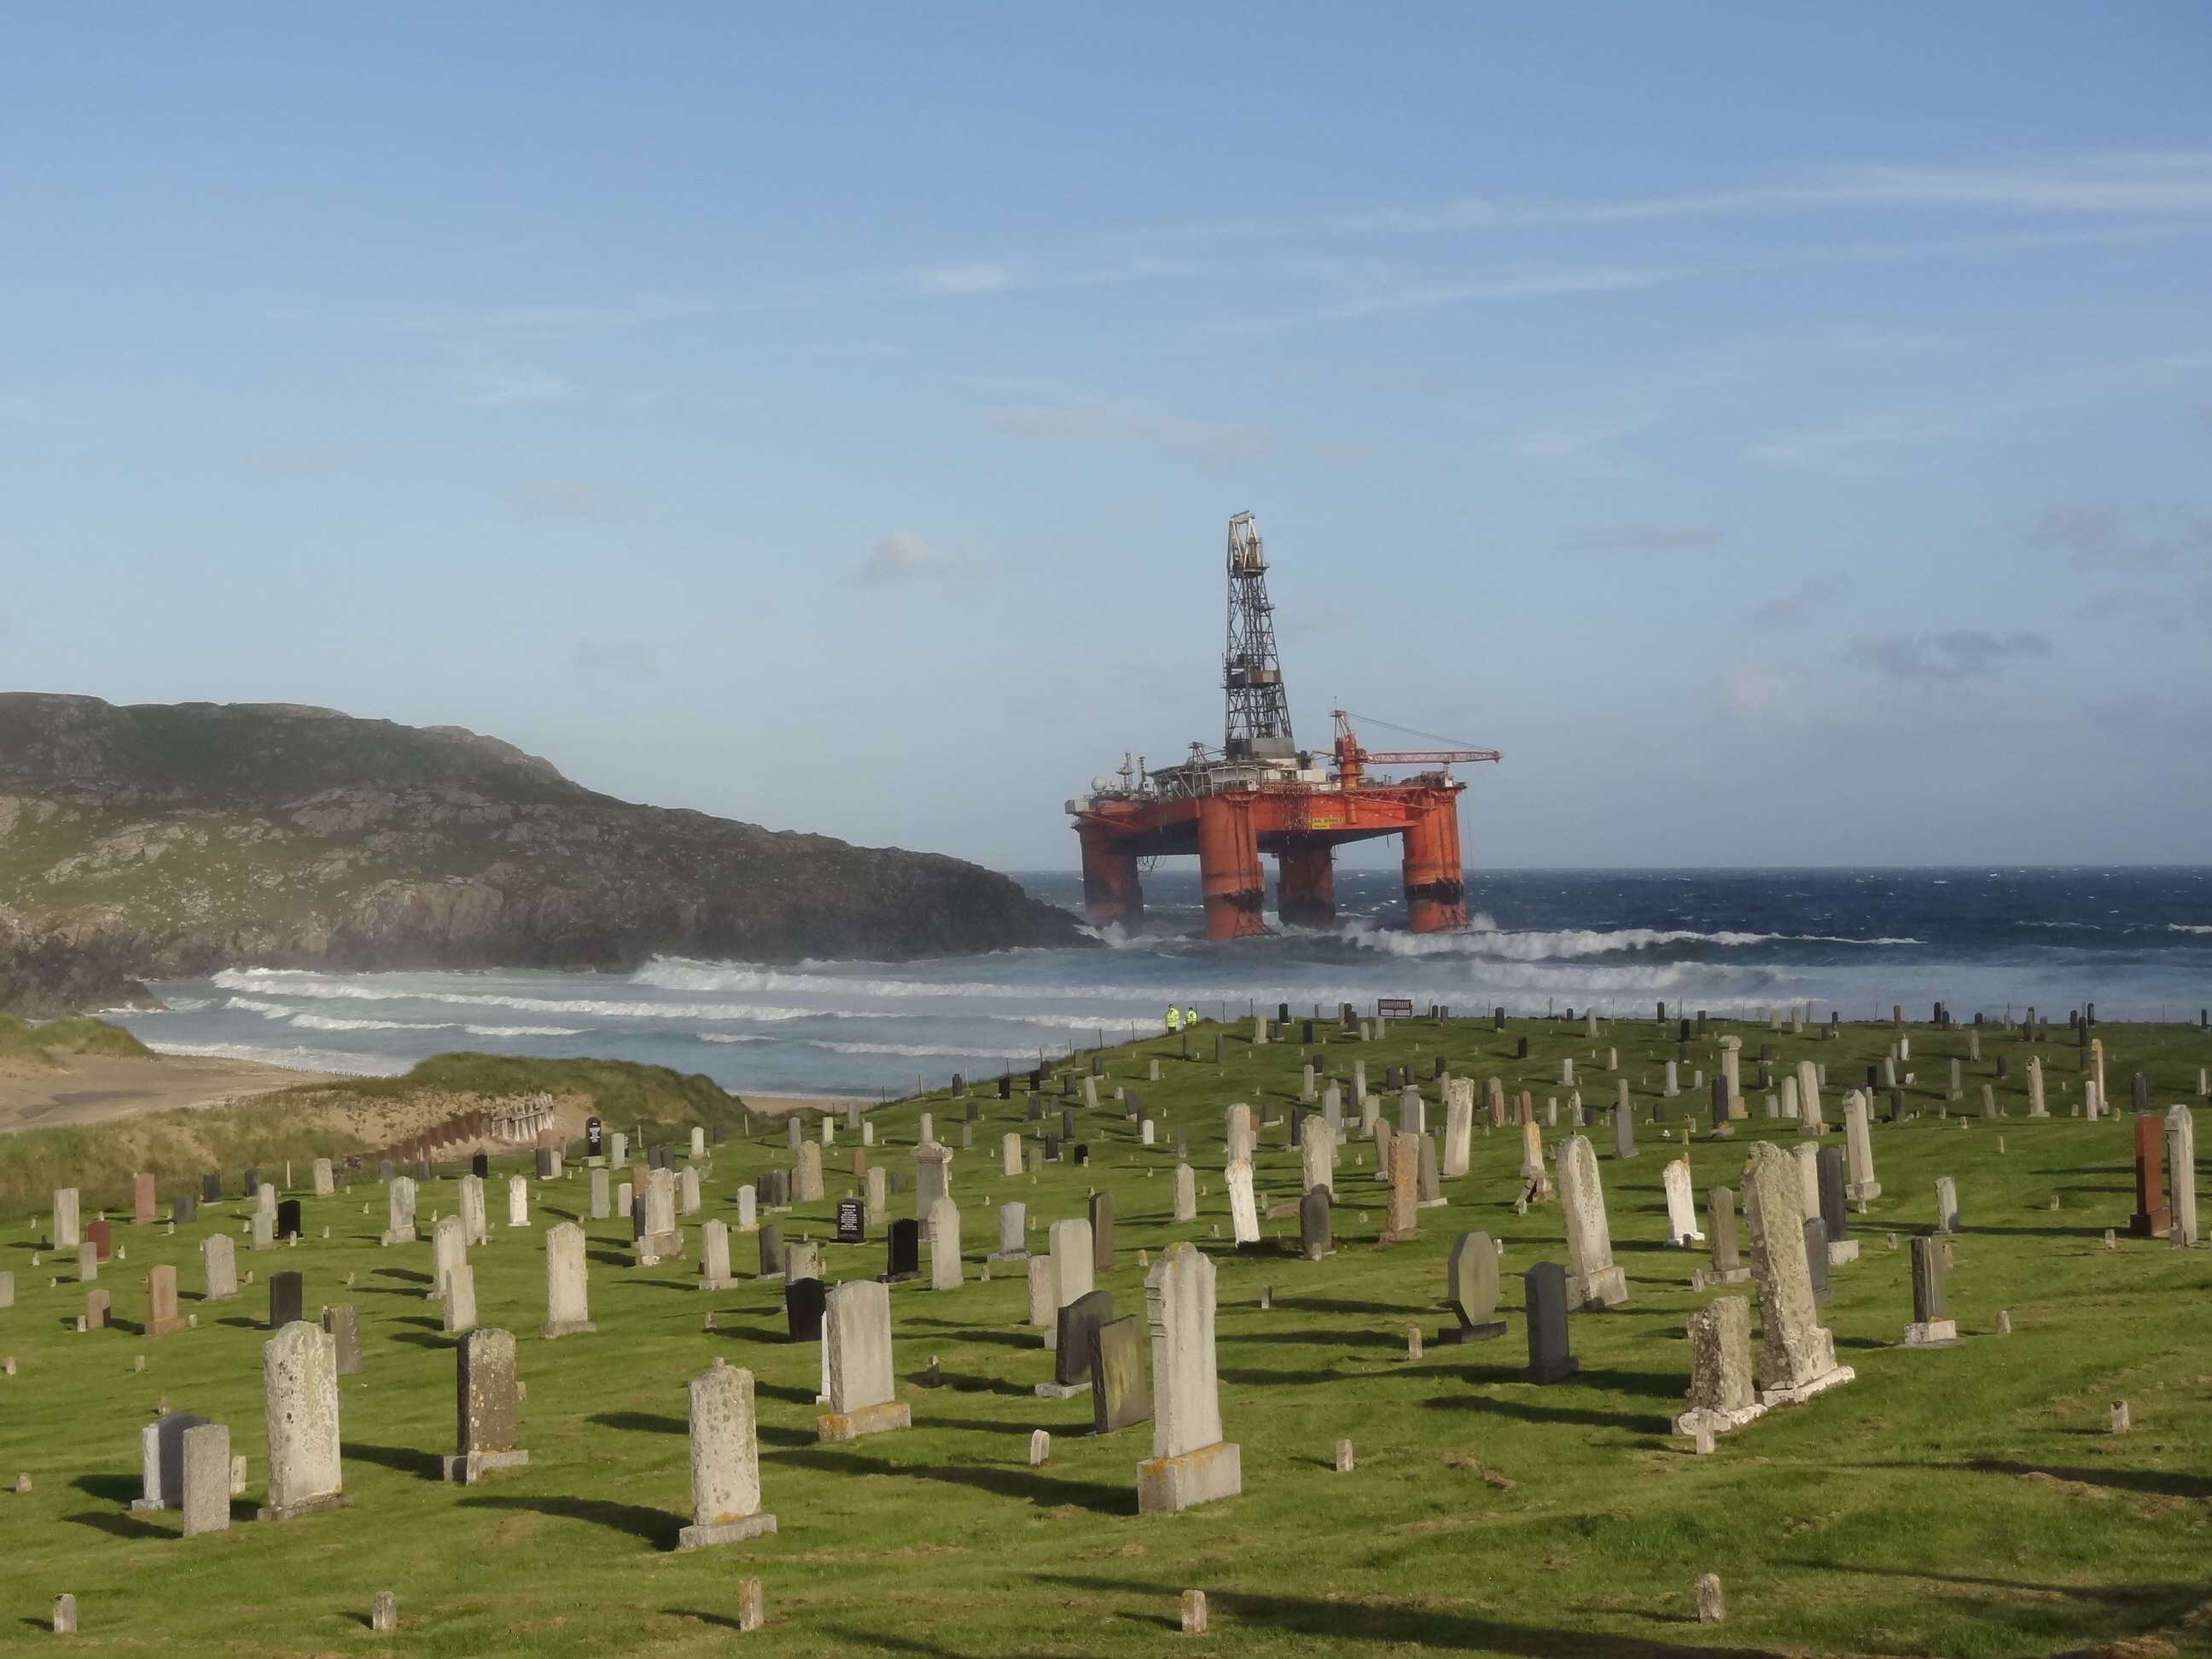 The oil rig has come ashore at Dalmore, Lewis